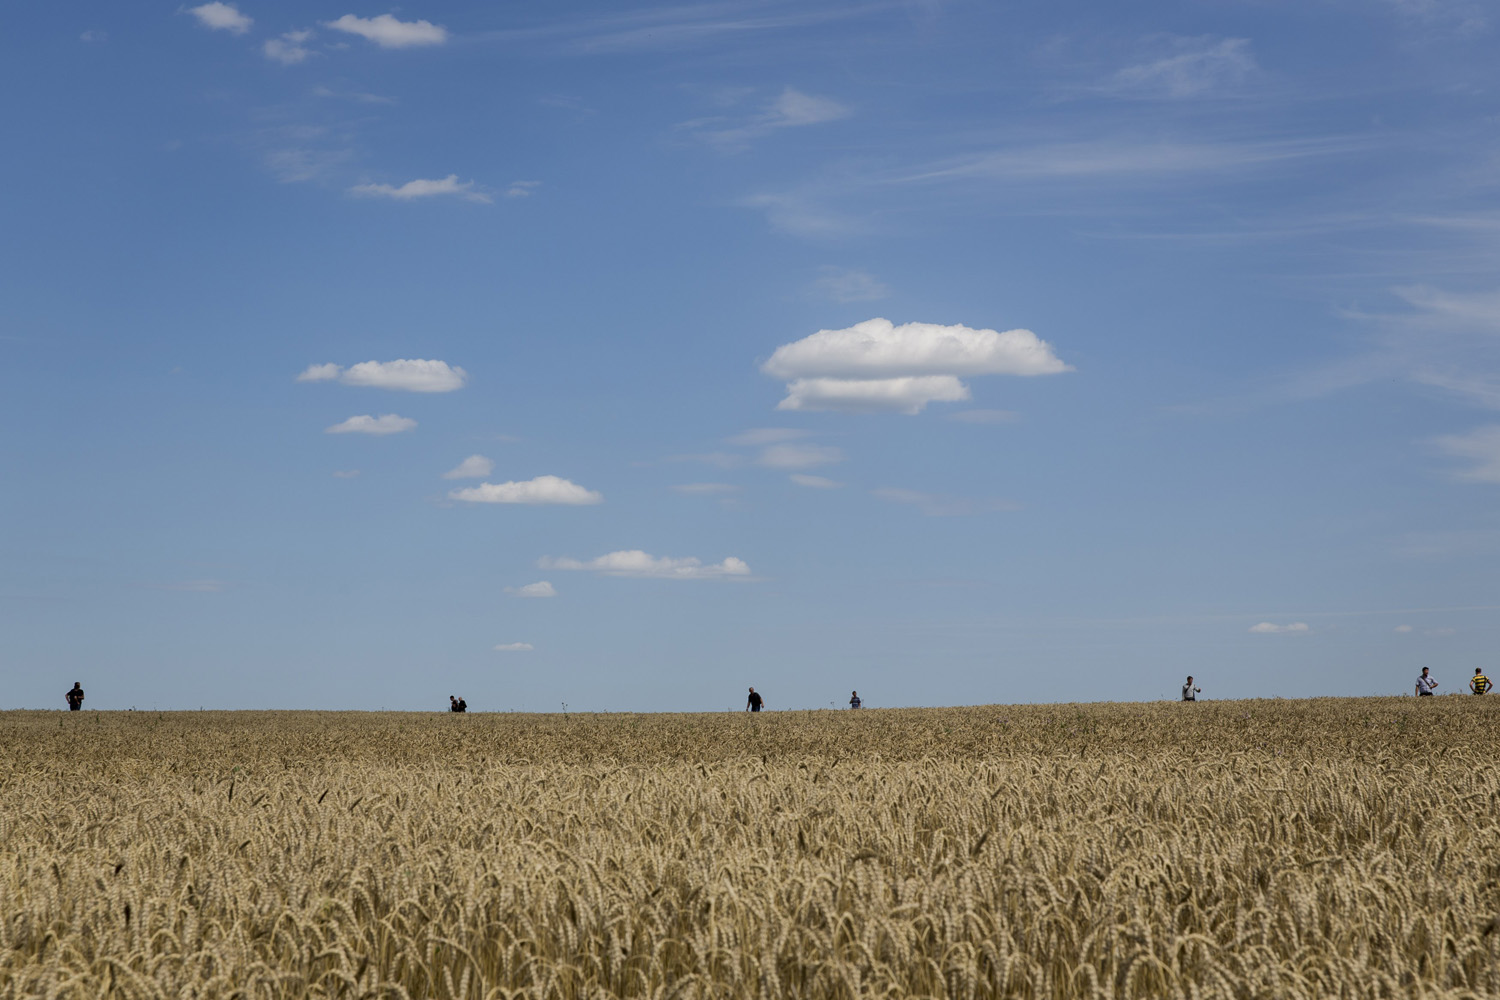 Jul. 20, 2014.  Volunteers look for wreckage from Malaysia Airlines flight MH17 in a wheat field in Grabovo, Ukraine.